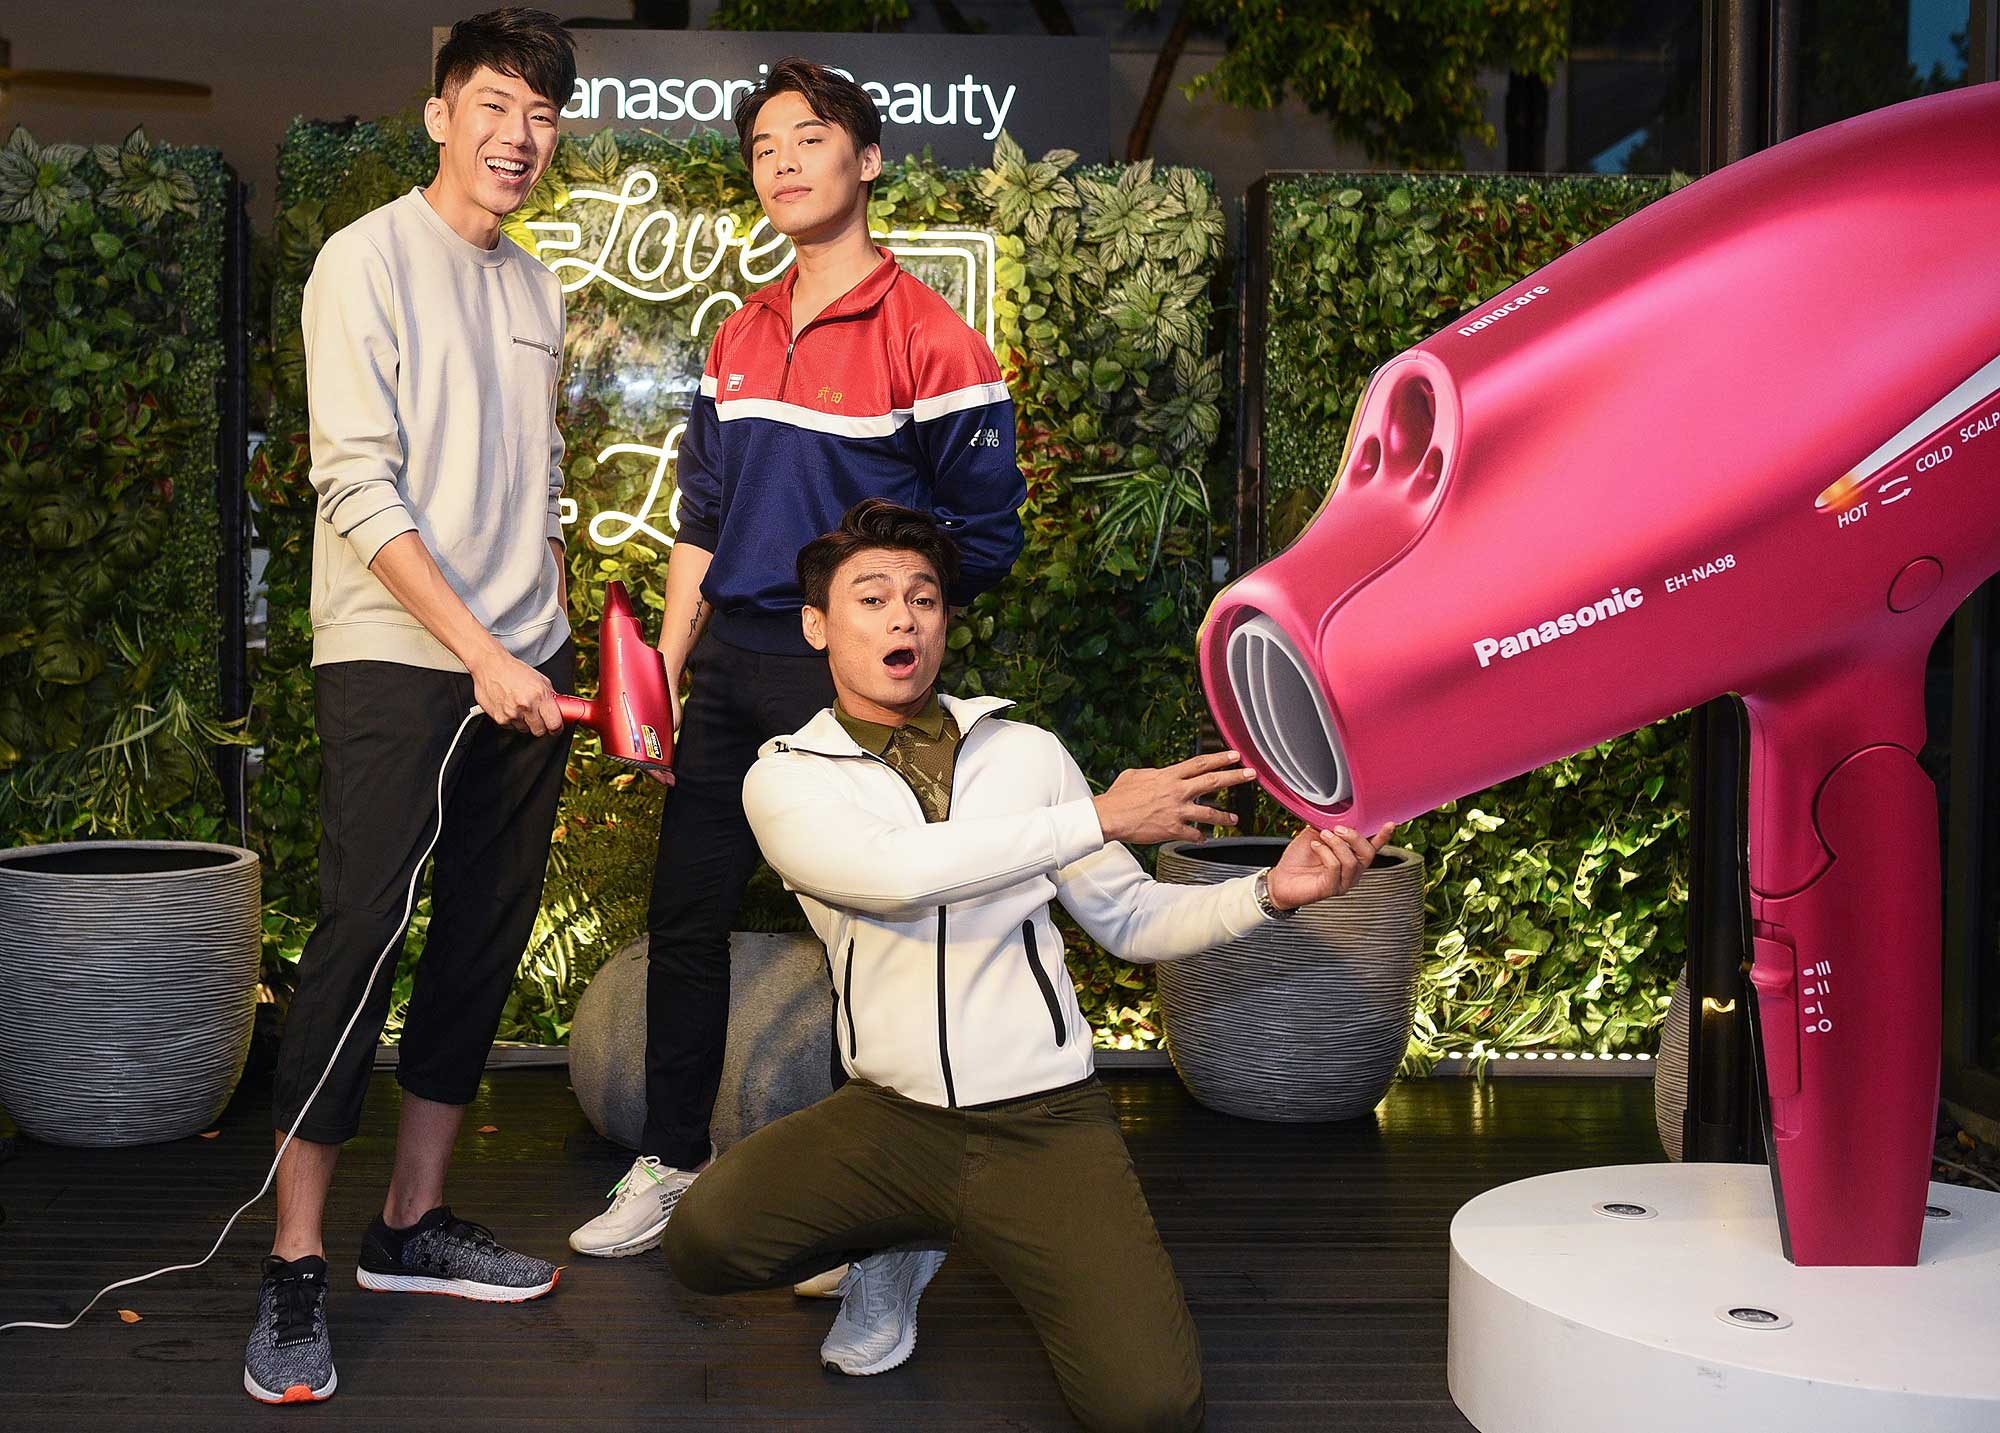 Tommy Tong, Preston Keen and Fiqrie. Photo: Panasonic Beauty Malaysia.